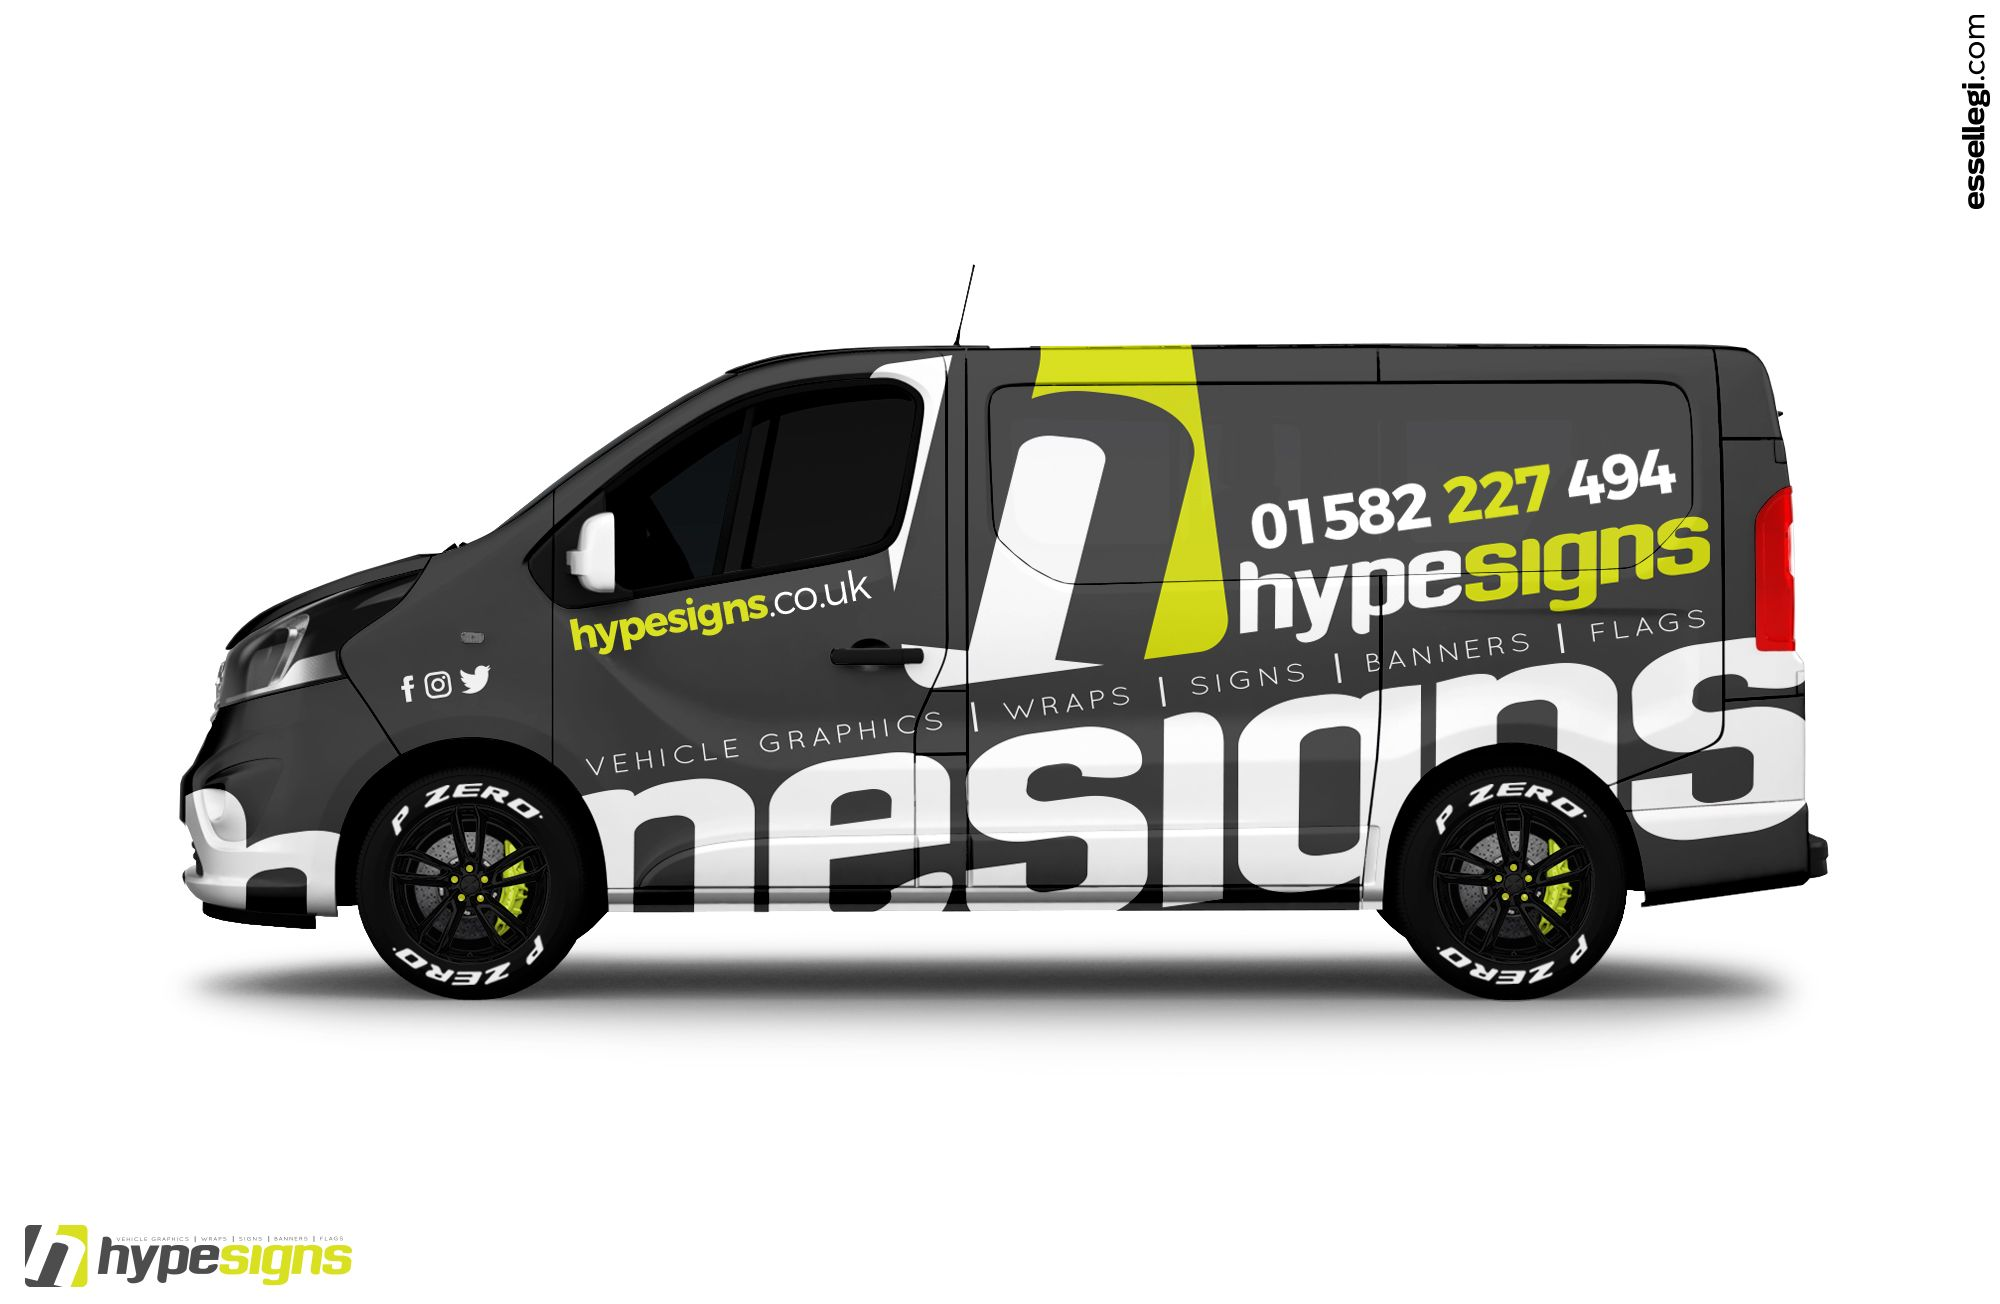 Best Opel Vivaro Wrap Design For Signs Signage Wraps Company